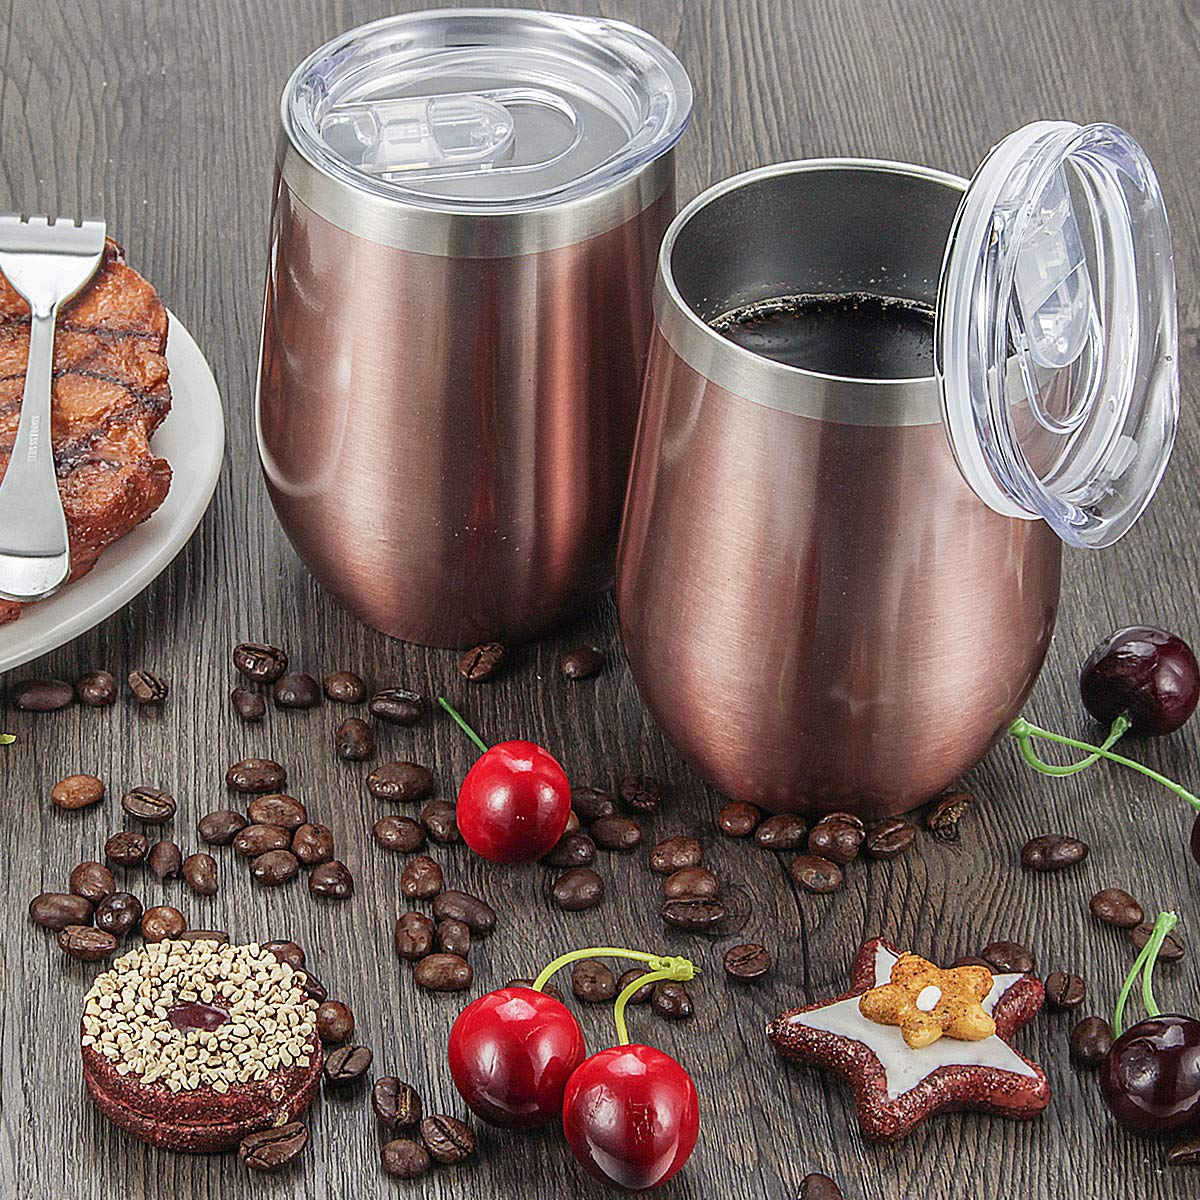 Fungun 6 pack 12 oz Stainless Steel Stemless Wine Glass Tumbler Double Wall Vacuum Insulated Wine Tumbler with Slip Lids Set of 6 for Coffee, Wine, Cocktails, Ice Cream Including 6 Straws(Rose Gold) by Fungun (Image #7)